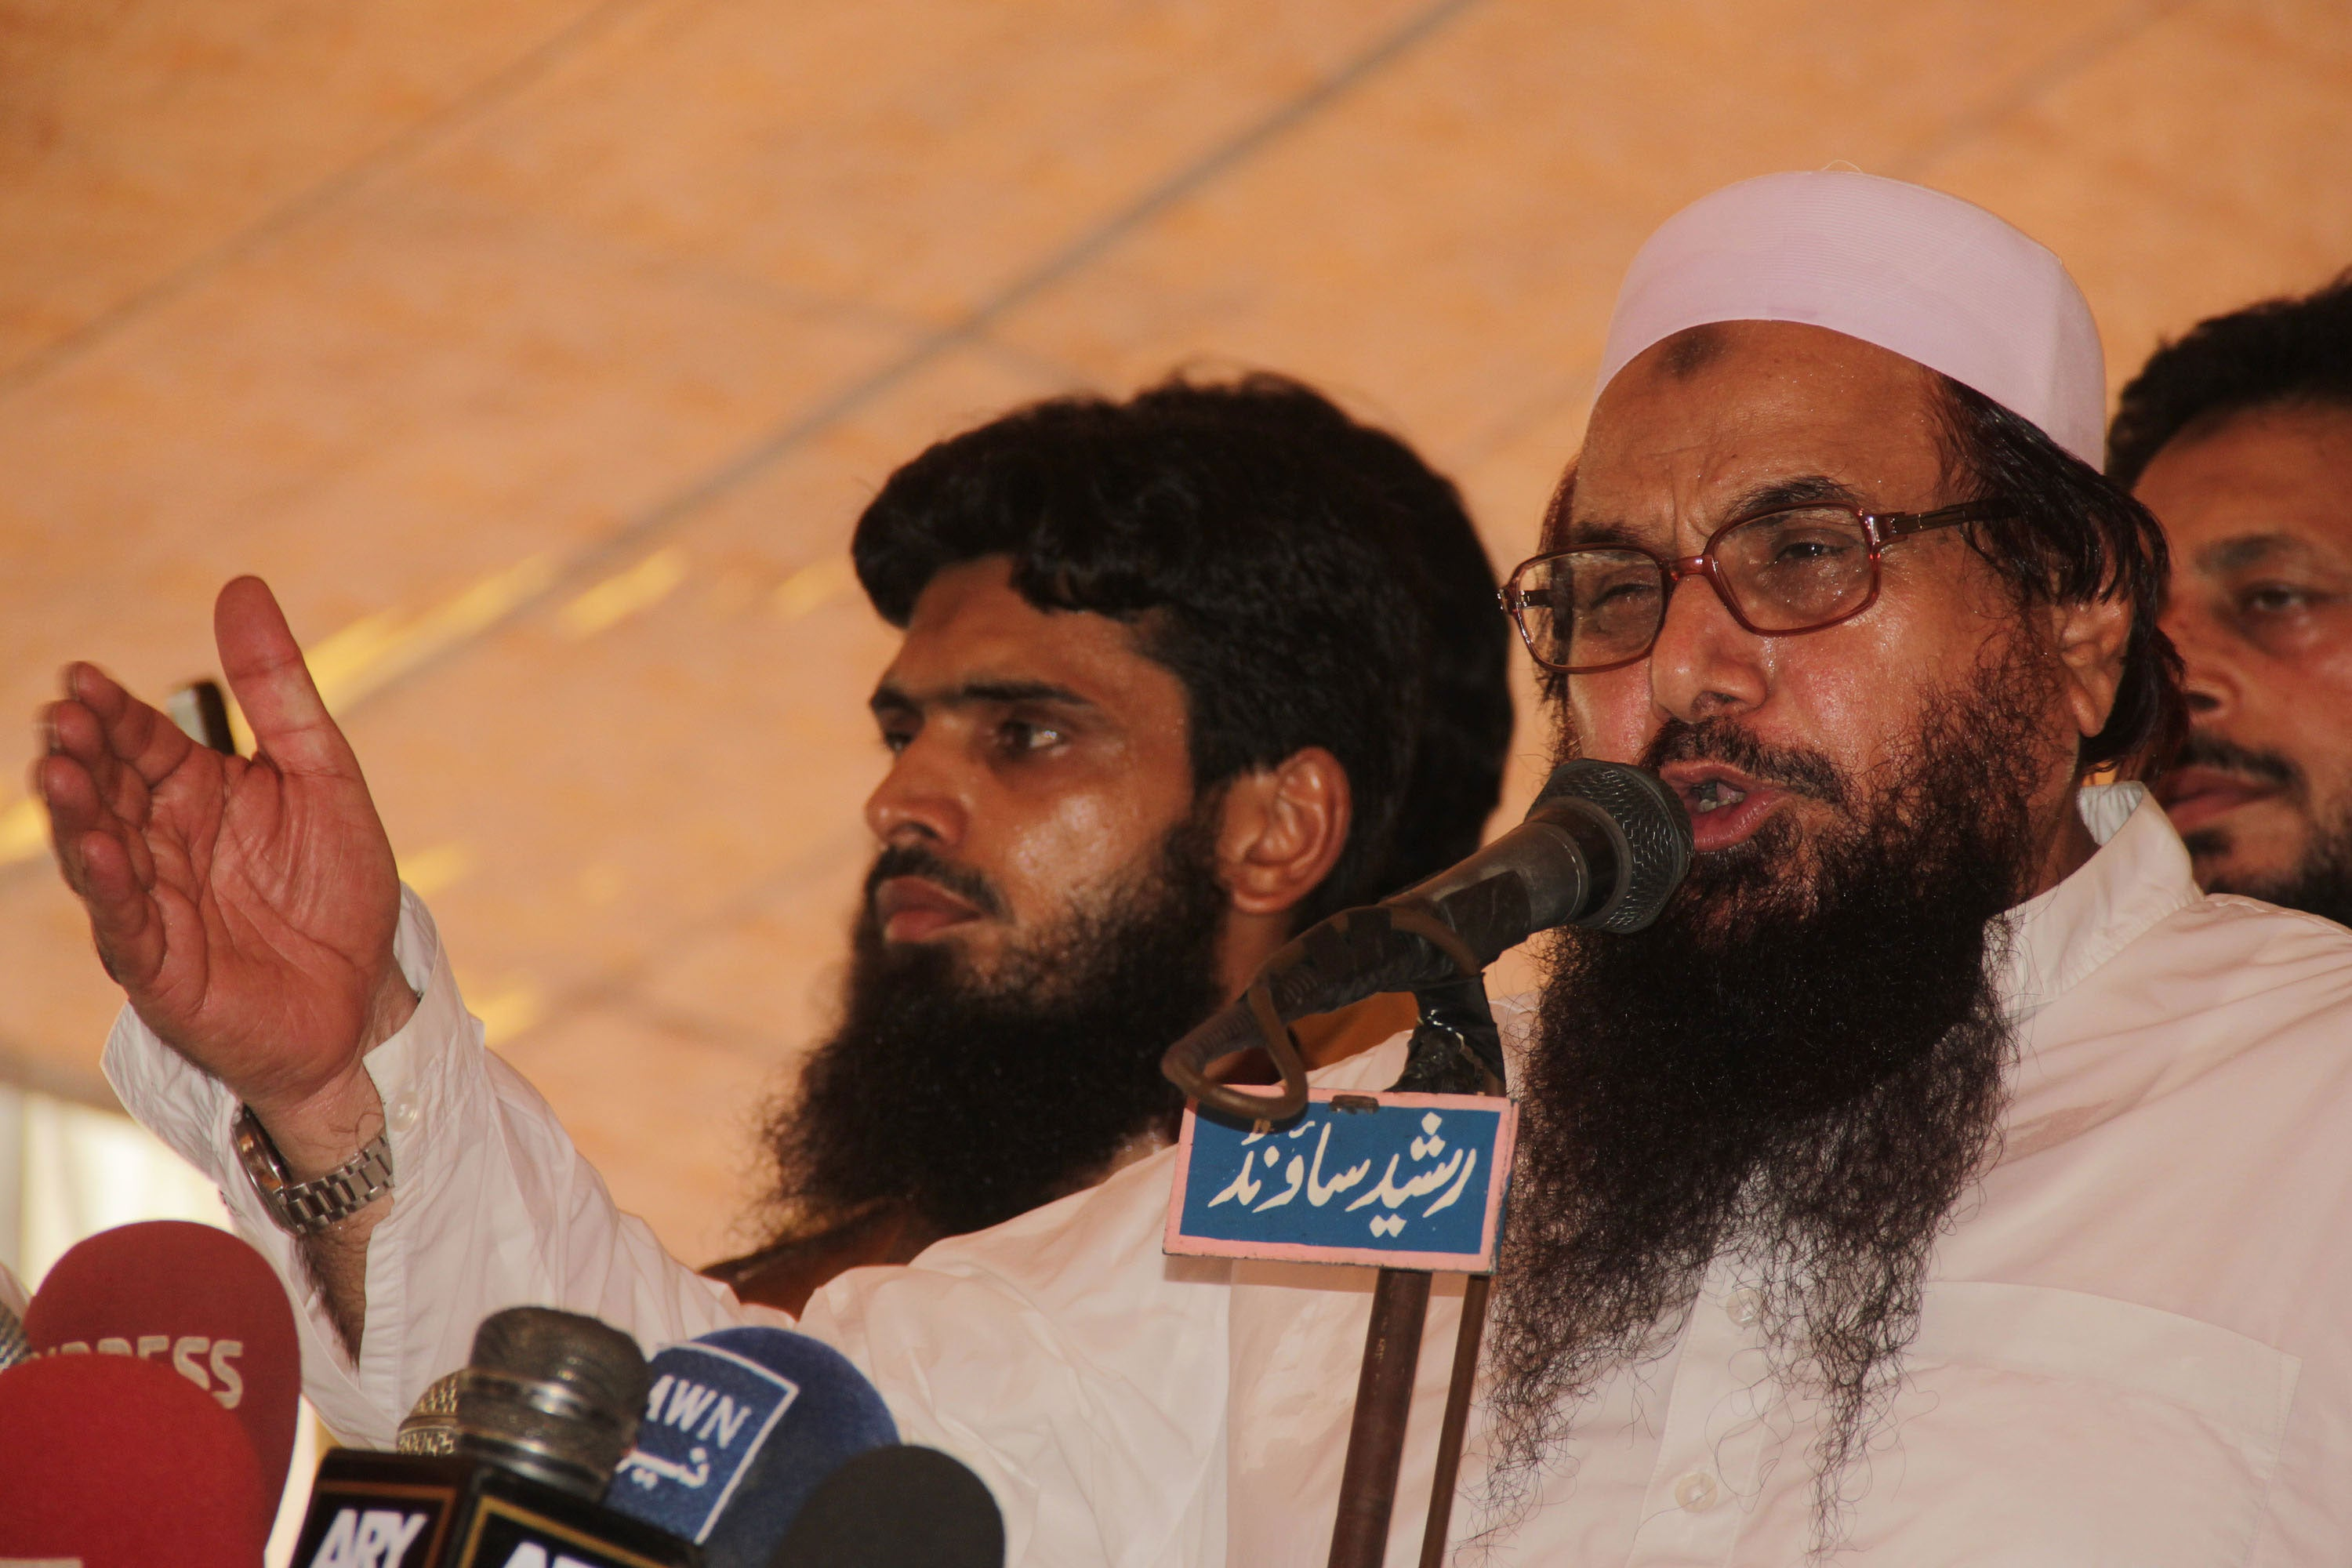 Hafiz Mohammad Saeed, founder of the Lashkar-e-Taiba Islamist group, helped orchestrate the 2012 Mumbai terror attacks. (Photo: Rana Sajid Hussain/Sipa USA/Newscom )